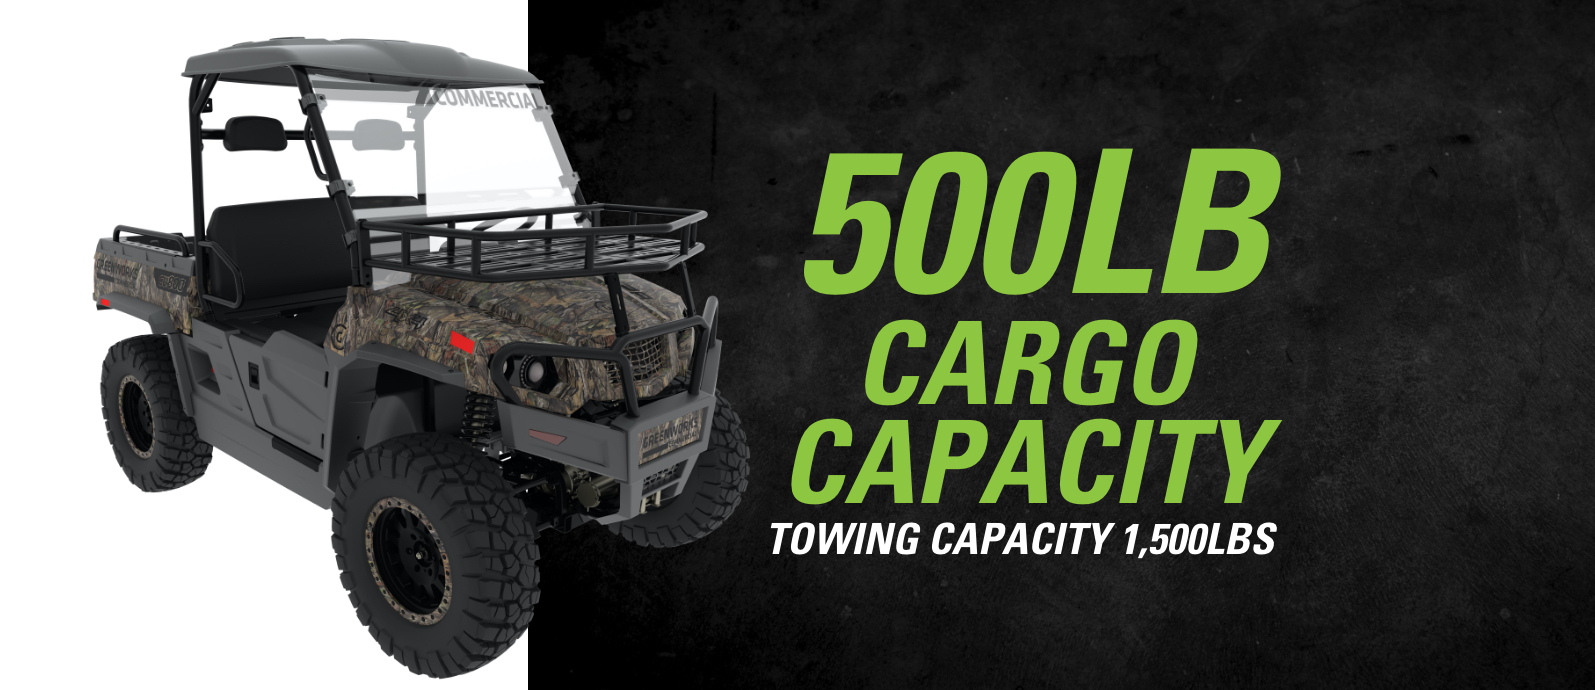 82V Utility Vehicle Camo | Greenworks Commercial